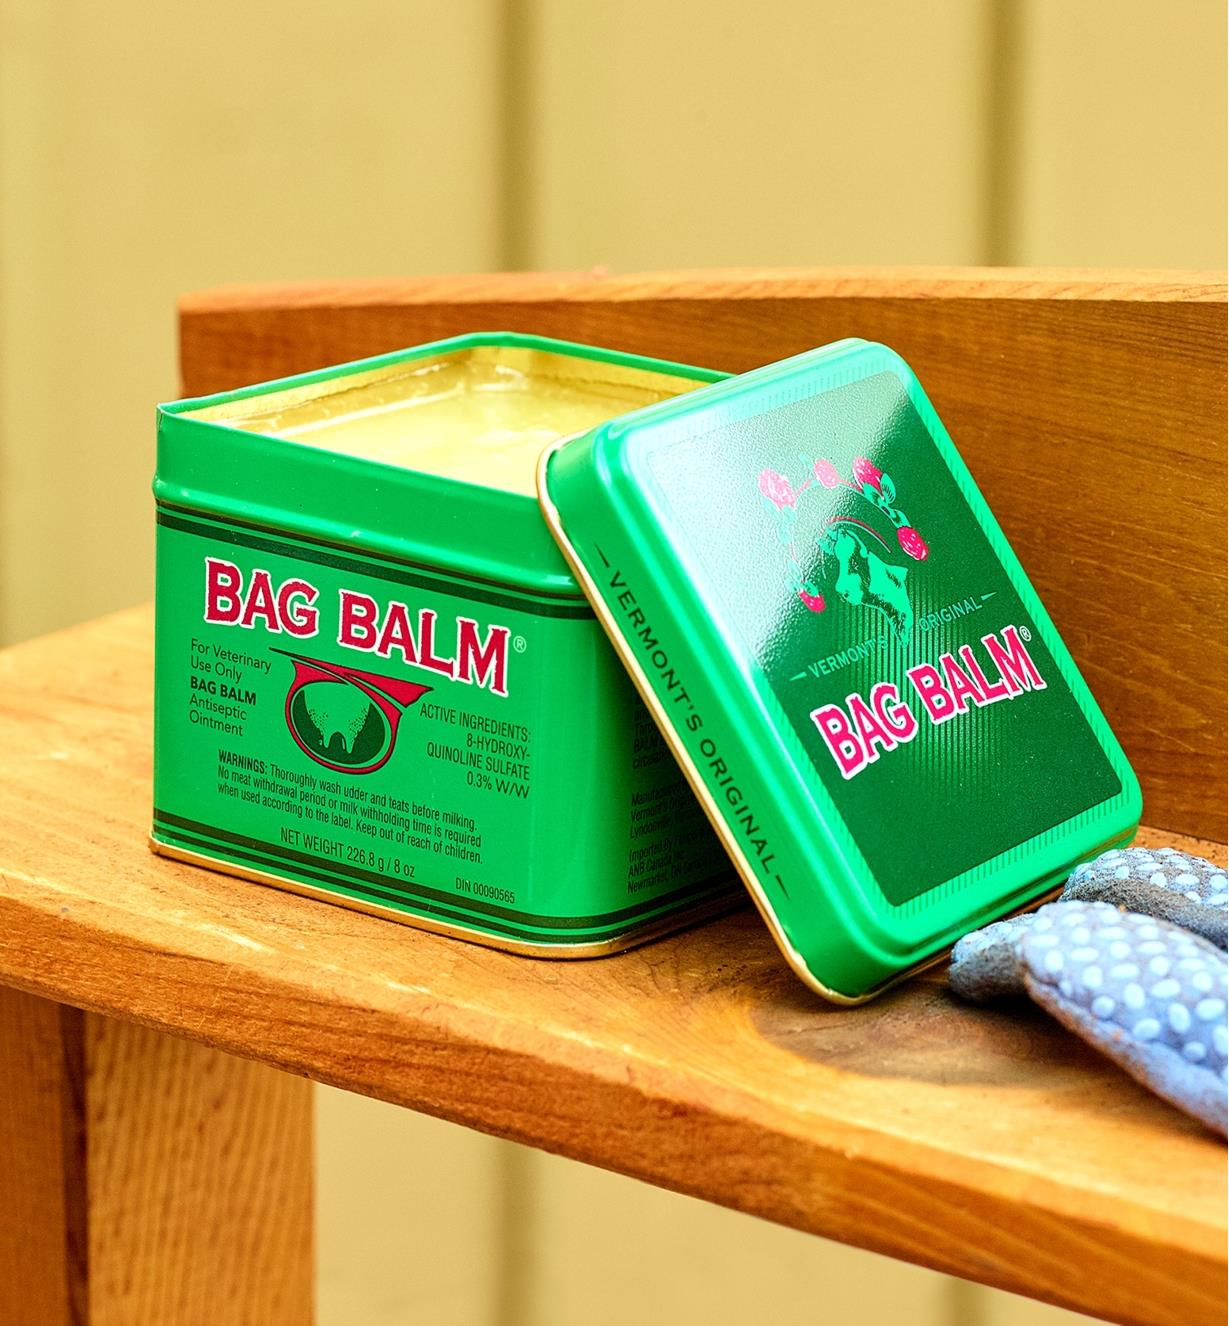 A tin of Bag Balm on a shelf